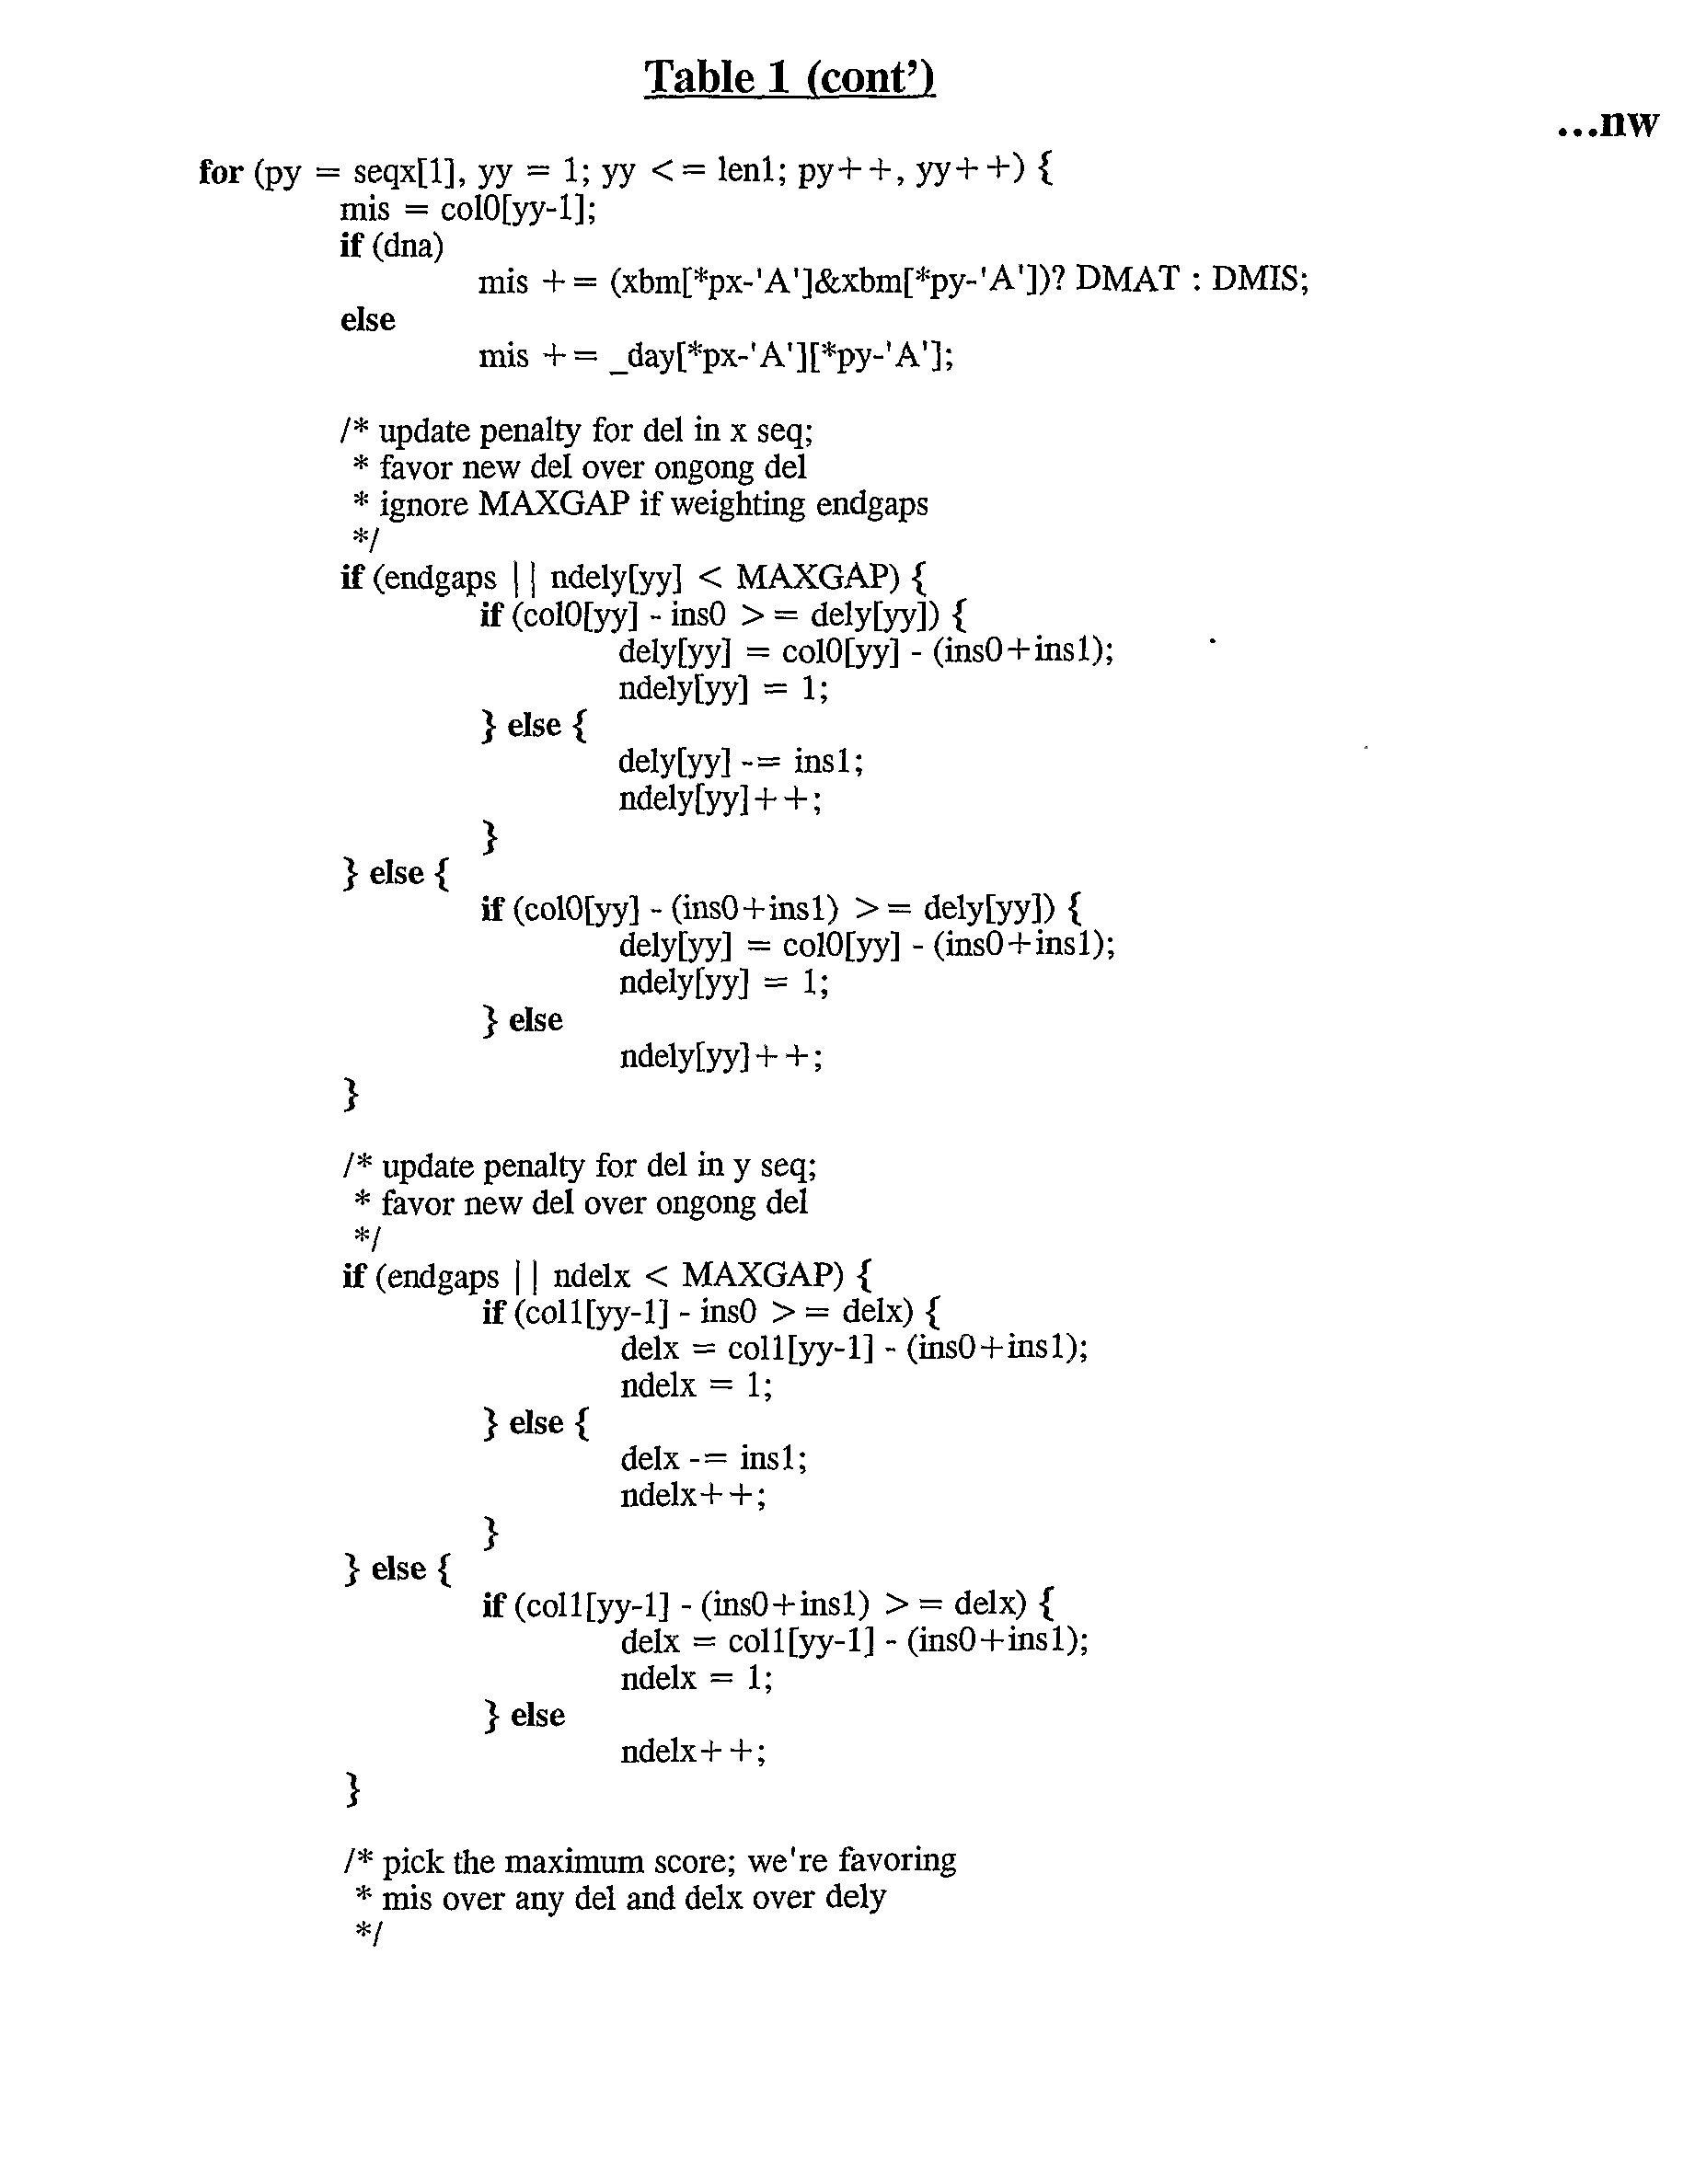 hypothetical decimal computer However, if nine decimal digits are used, then converting the decimal number to the closest binary number will recover the original floating-point number proof binary single precision numbers lying in the half open interval [10 3, 2 10) = [1000, 1024) have 10 bits to the left of the binary point, and 14 bits to the right of the binary point.